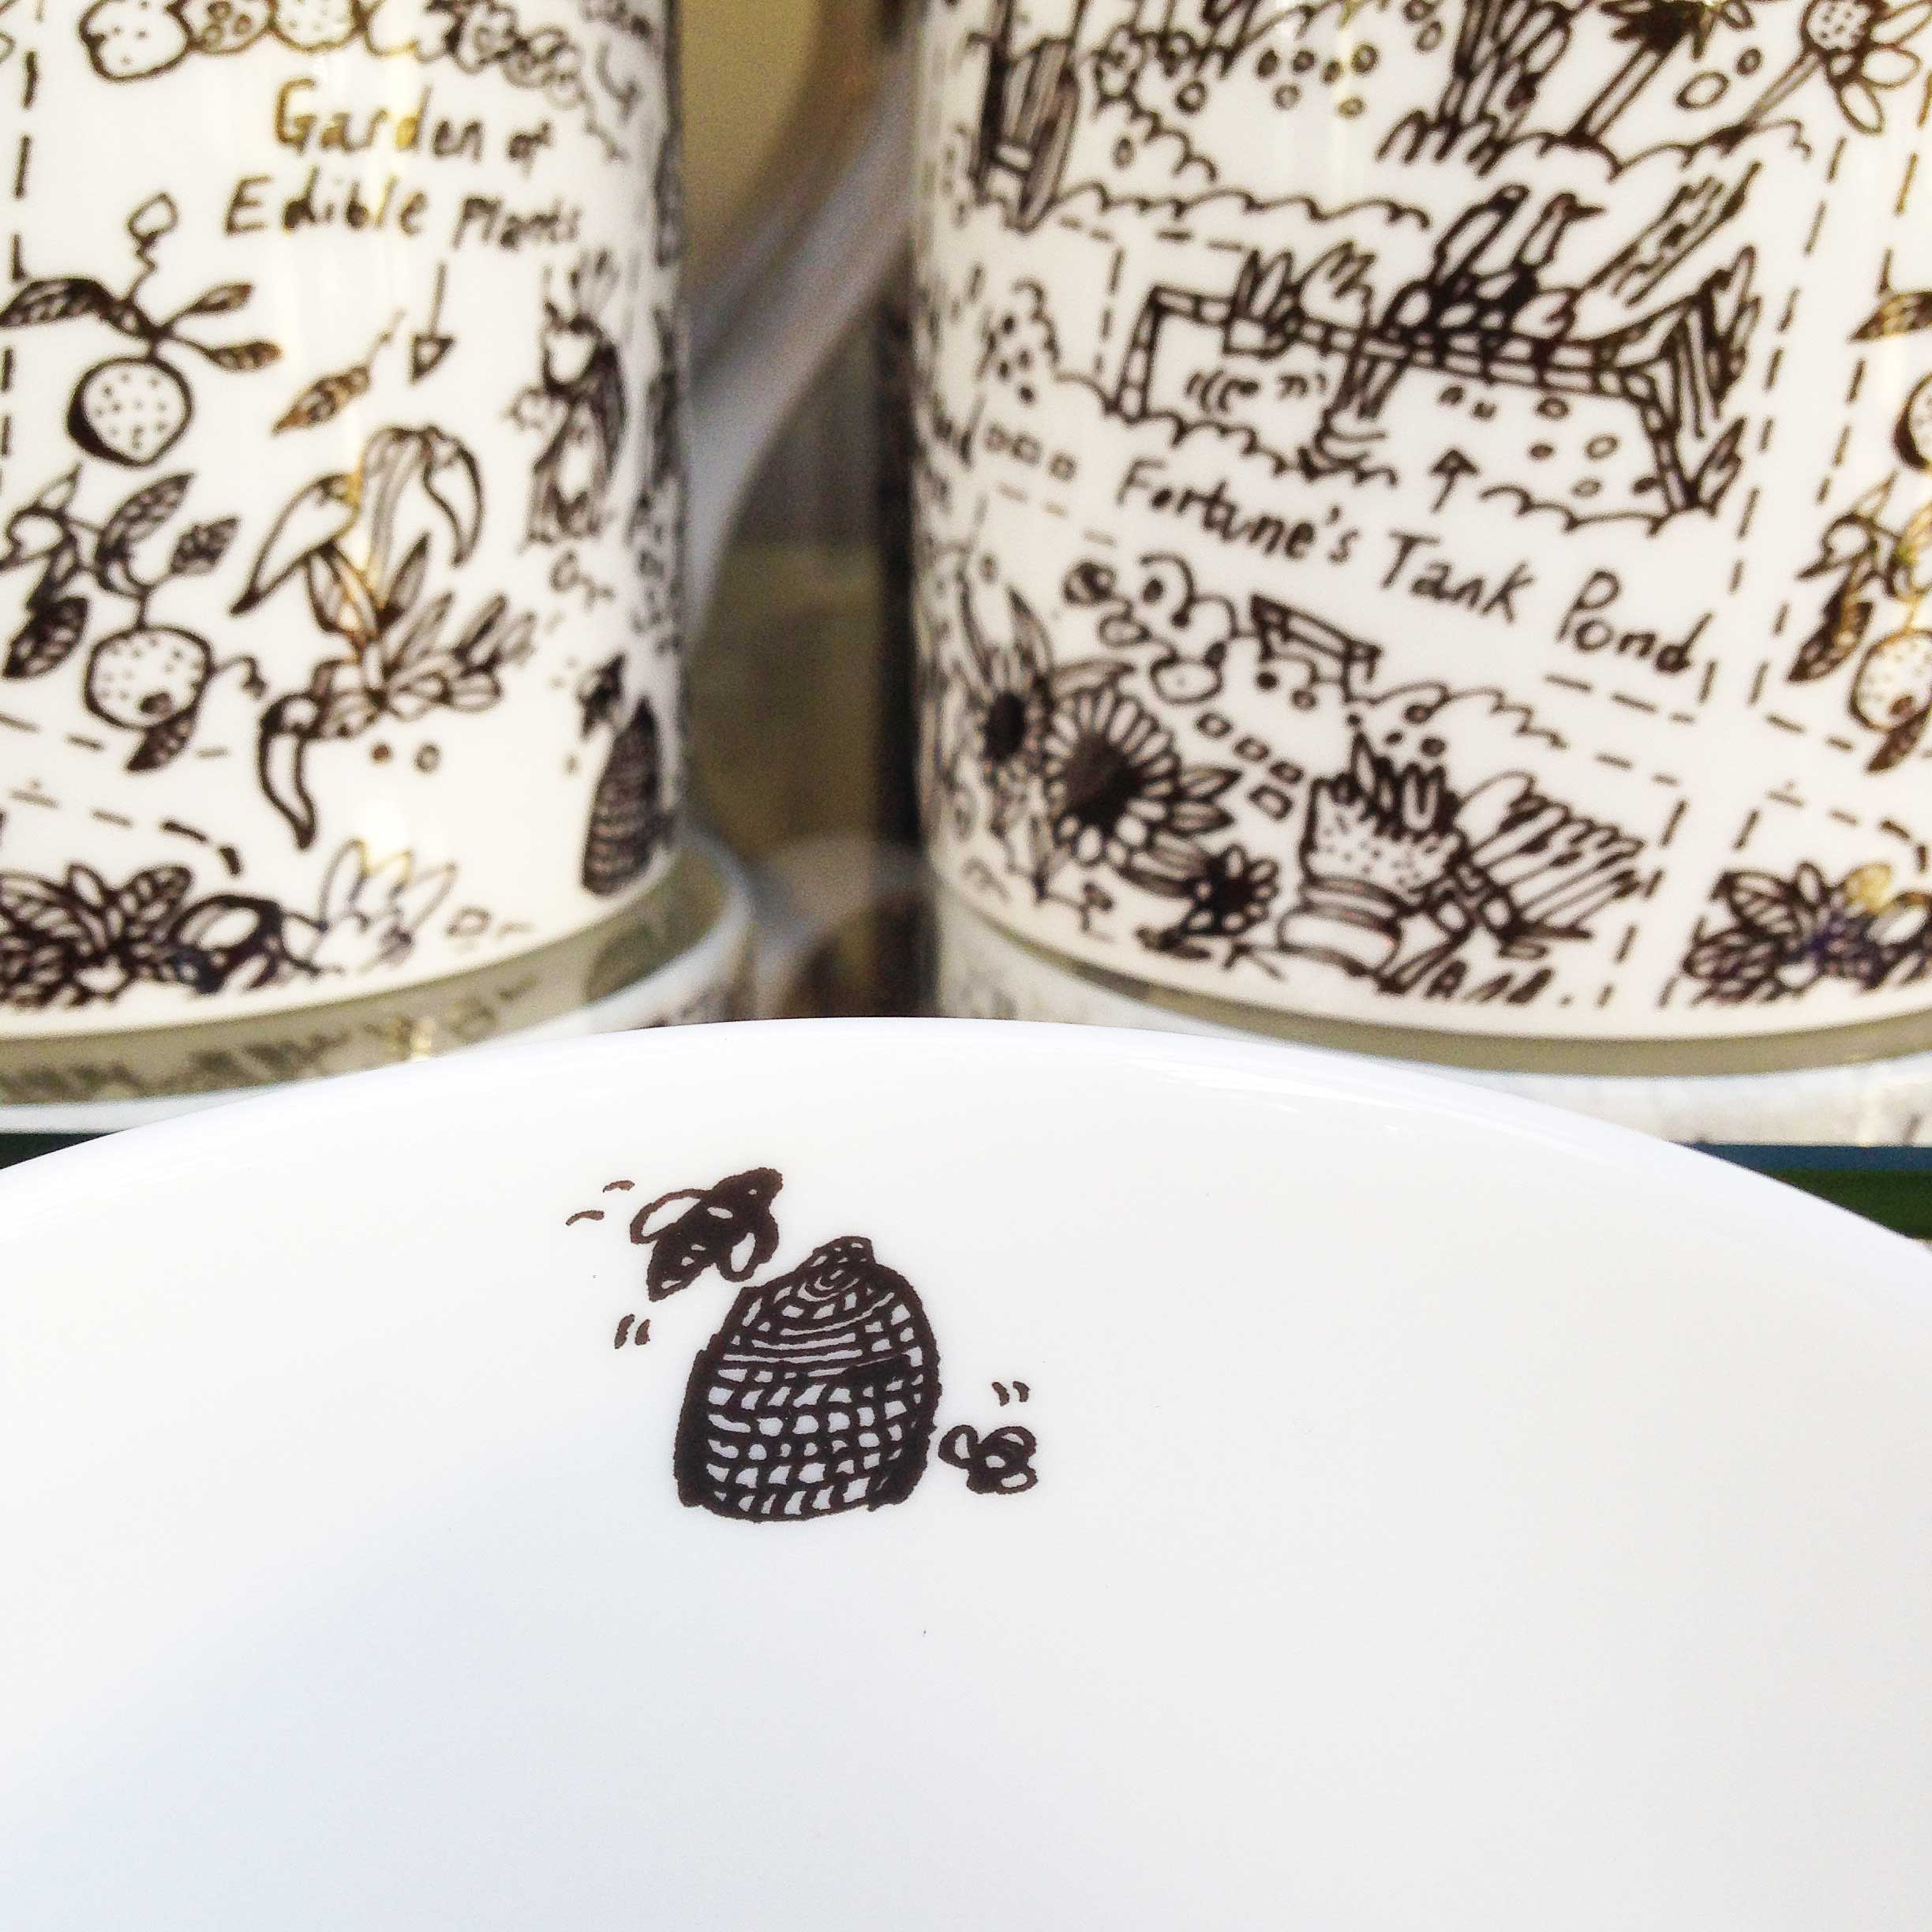 Chelsea Physic Garden mugs by James Oses, image 5